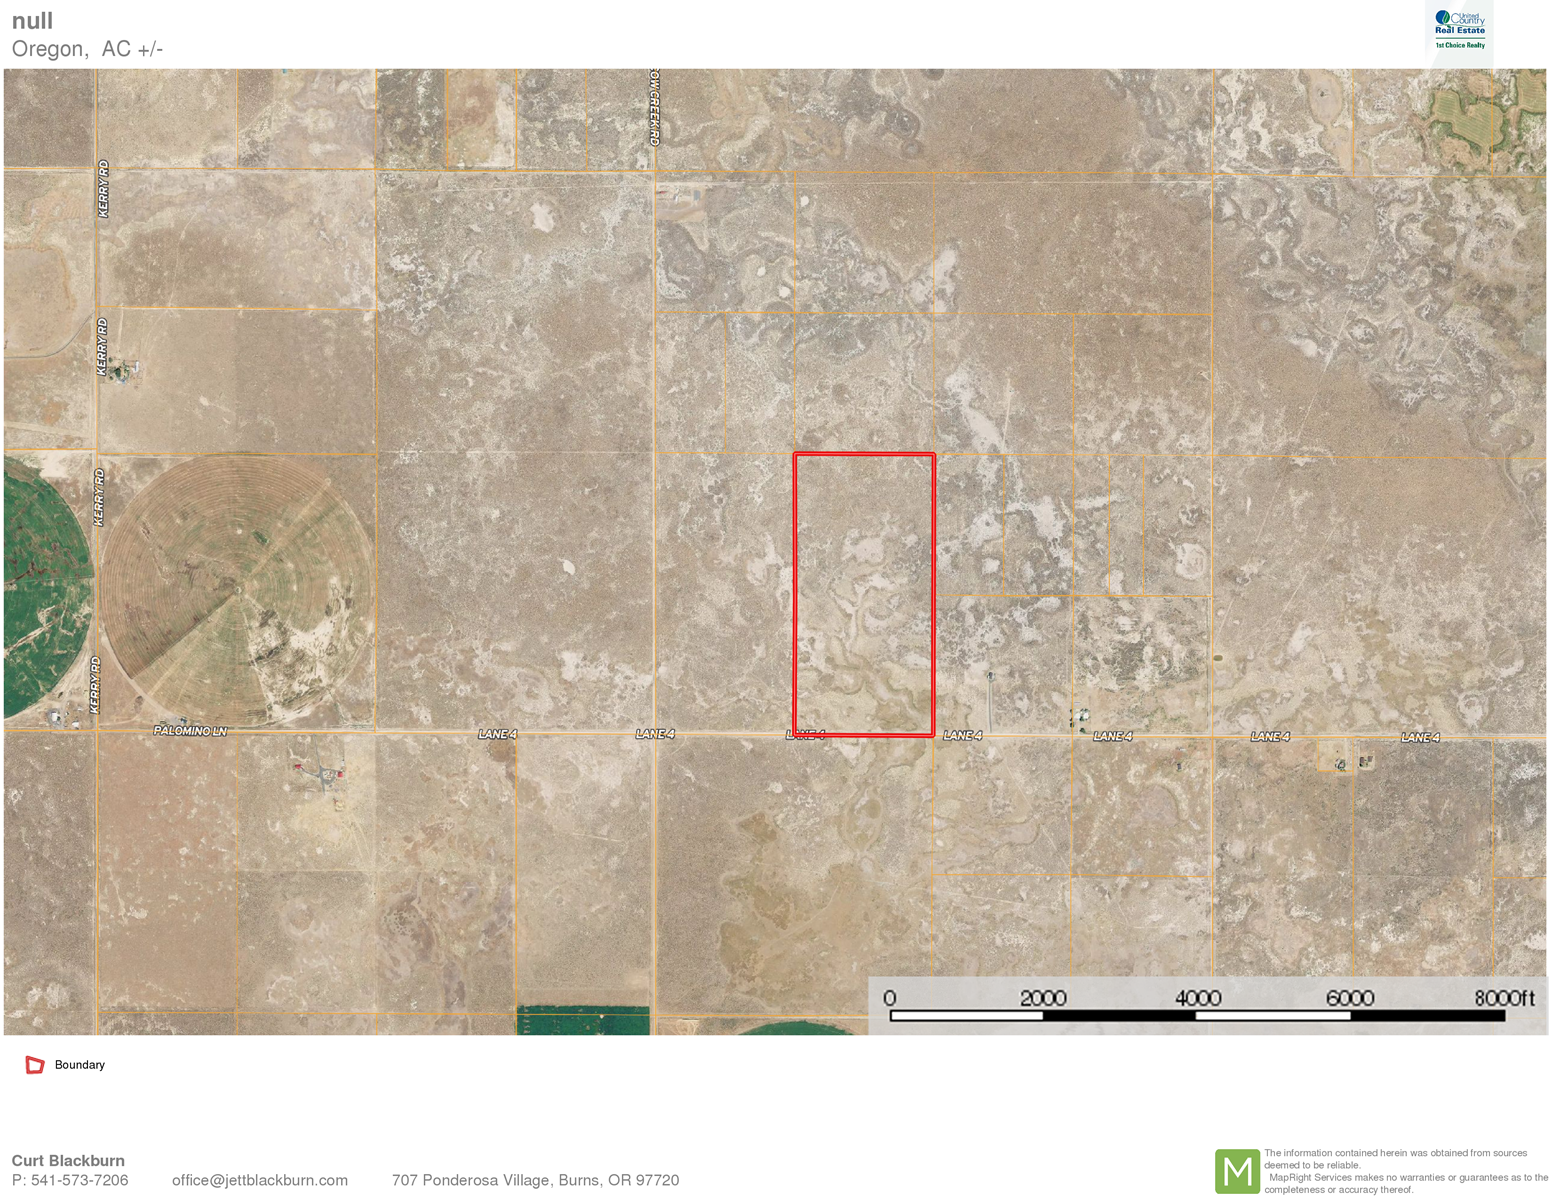 80 ACRES BARE LAND FOR SALE EAST OF BURNS OR - PALOMINO LN